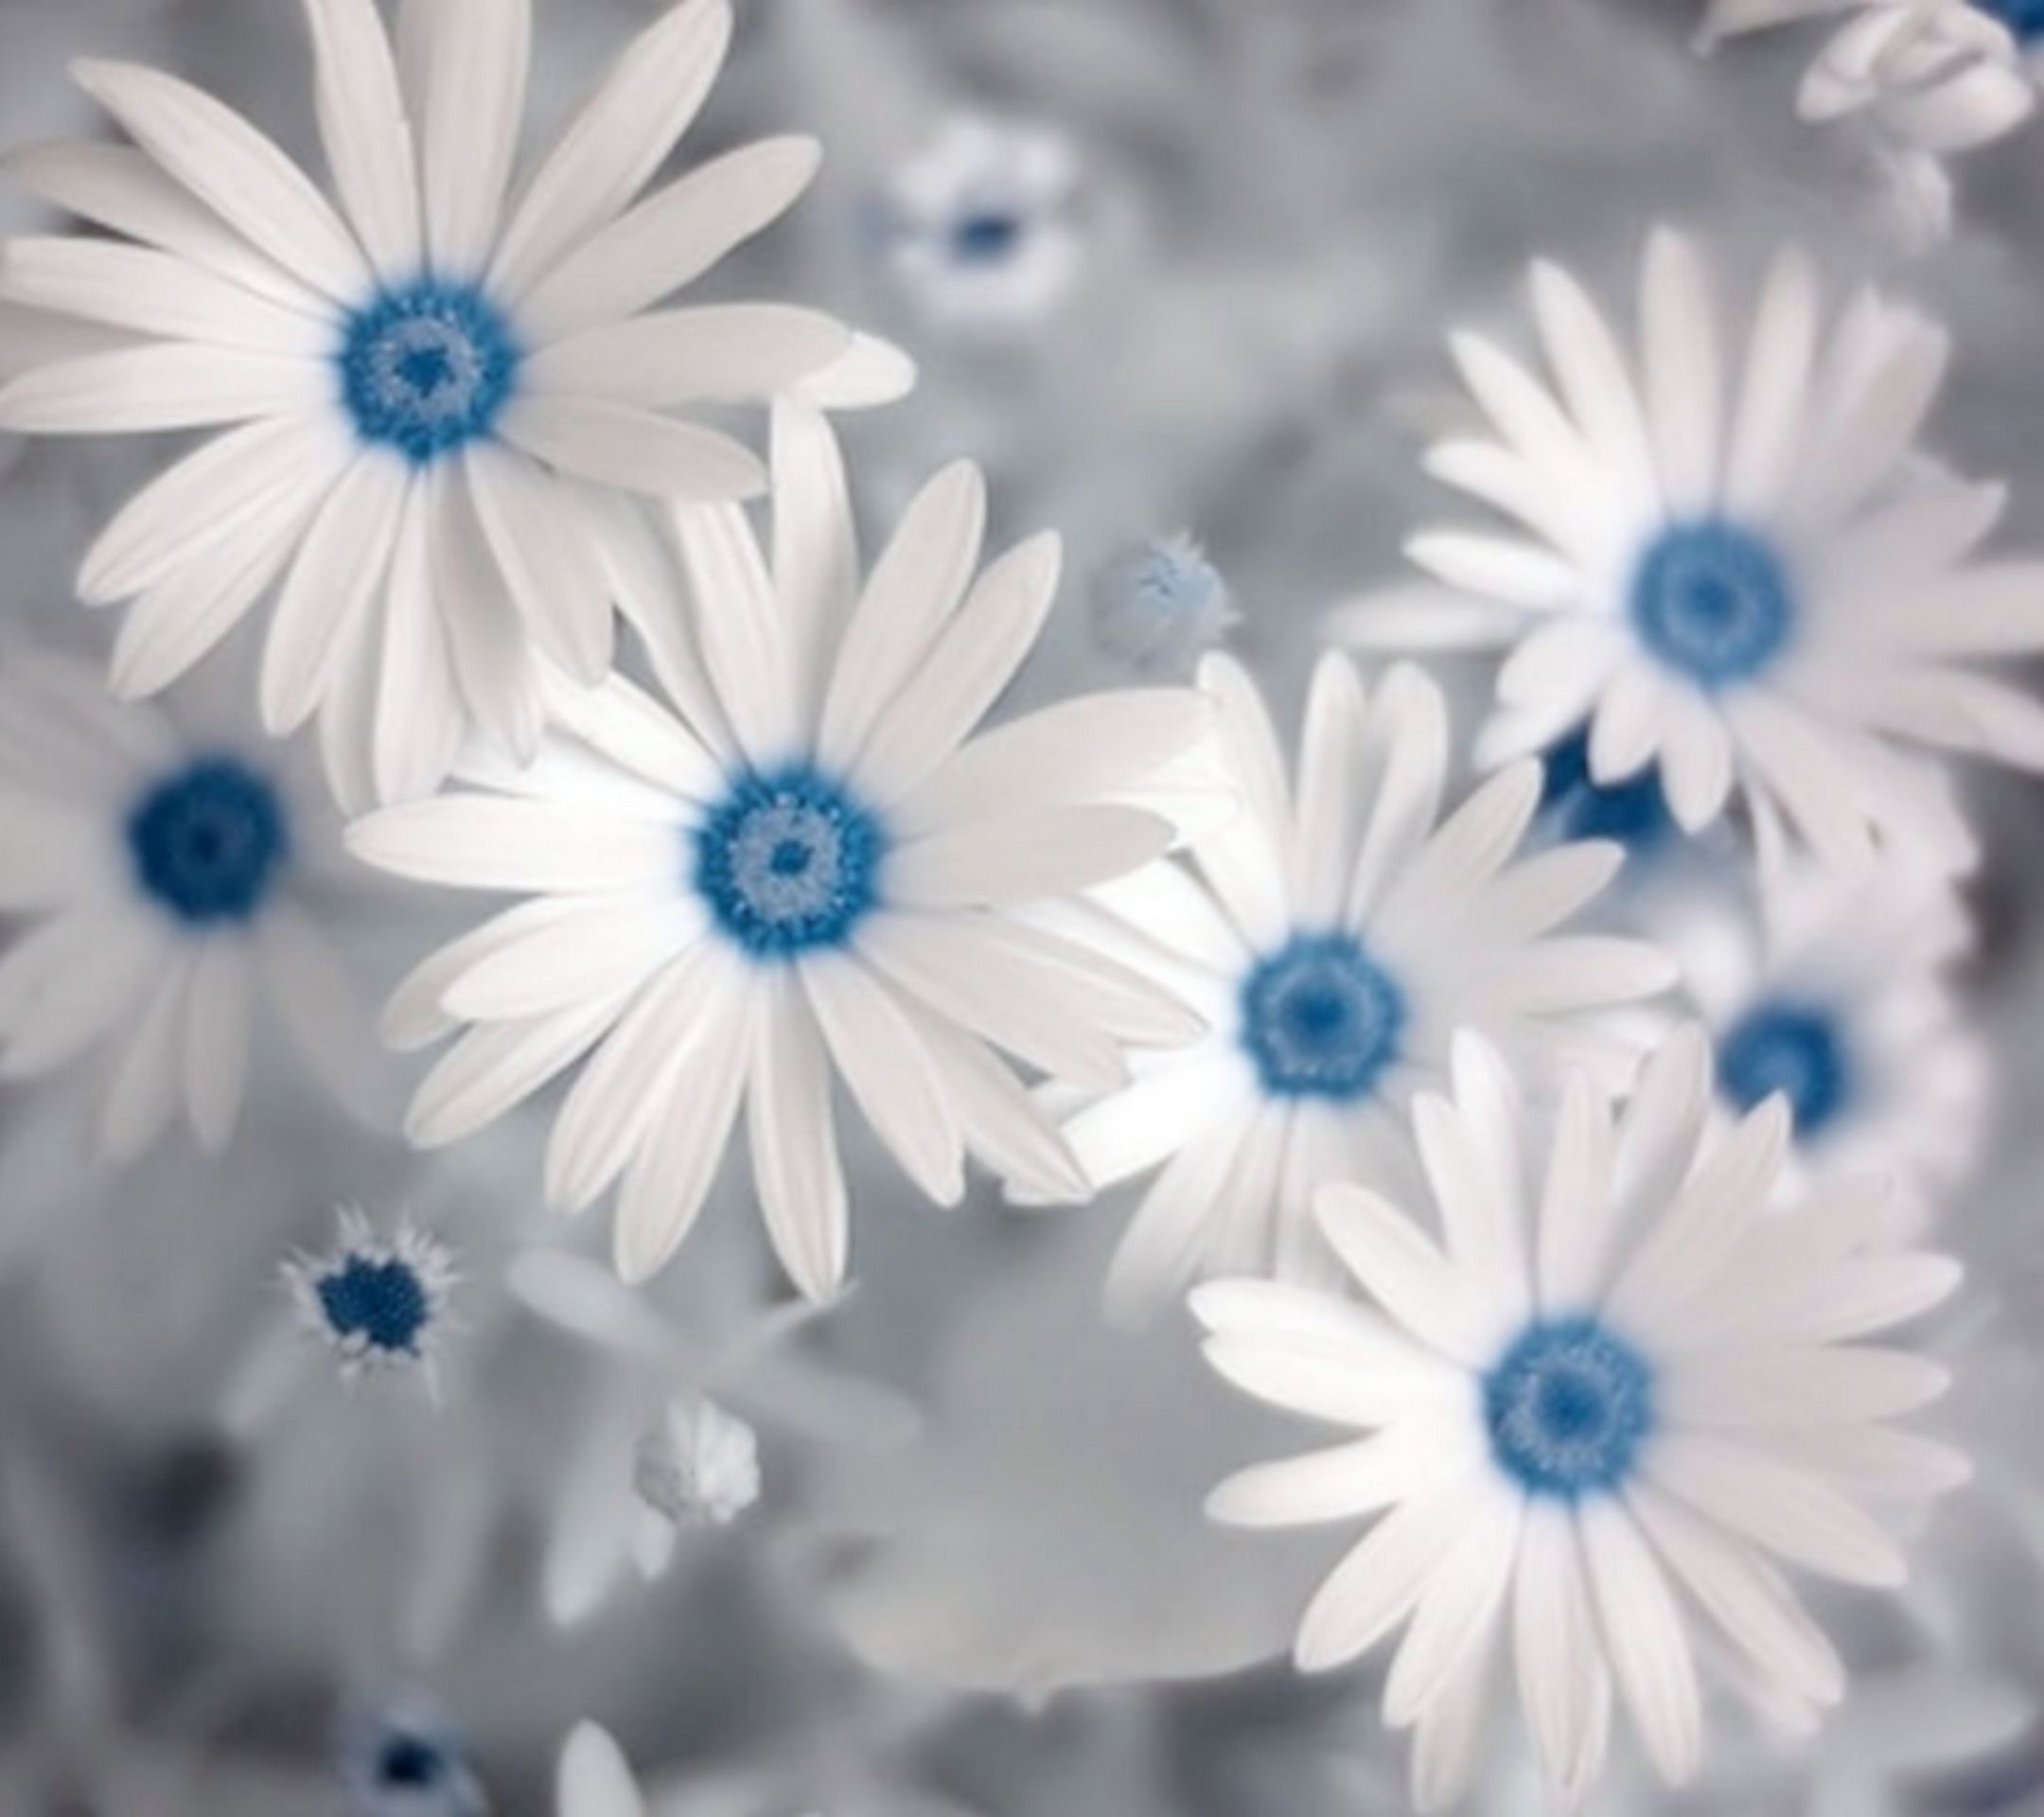 Contemporary blue and white flowers motif best evening gown calming flowers flowers pinterest flower flowers and flower power izmirmasajfo